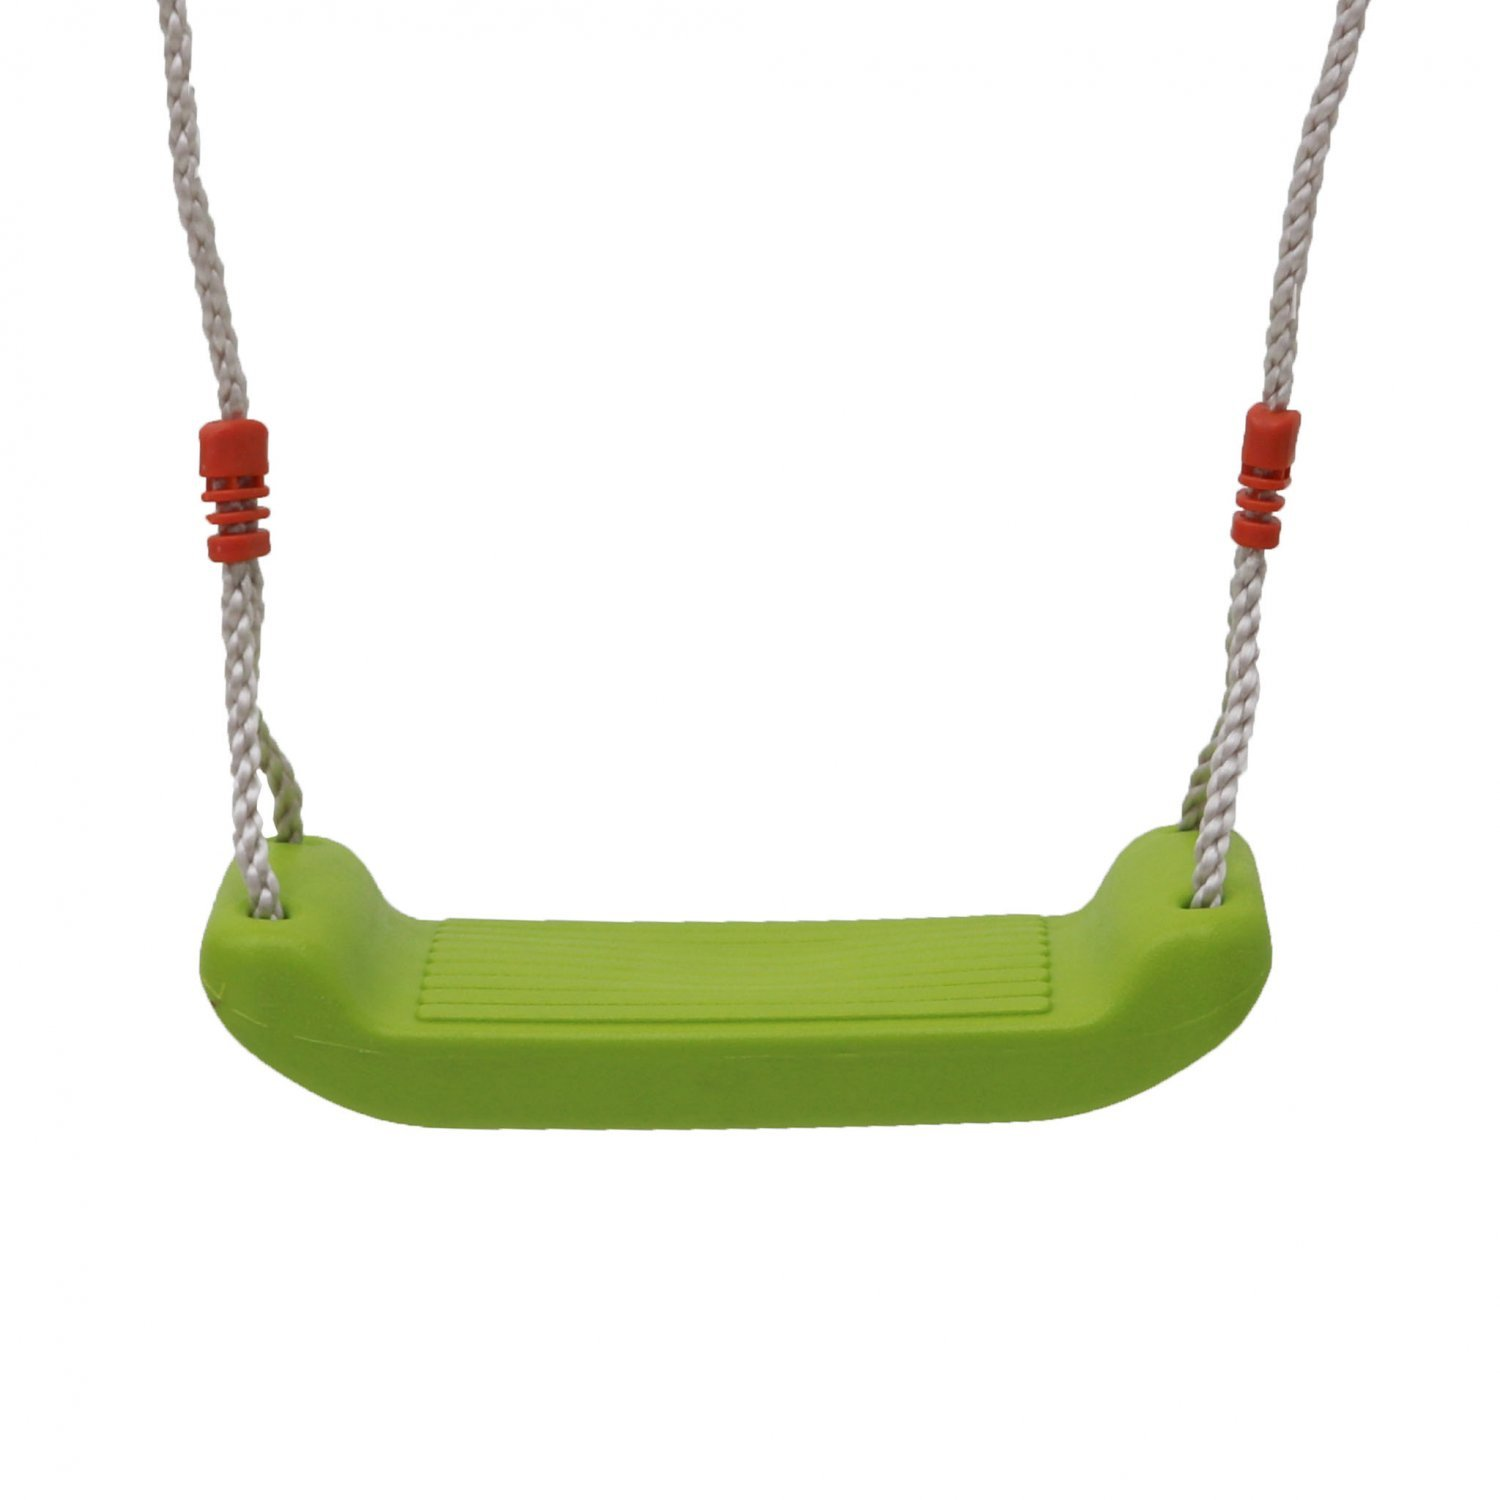 Childrens Outdoor Plastic Adjustable Garden Swing Seat Toy